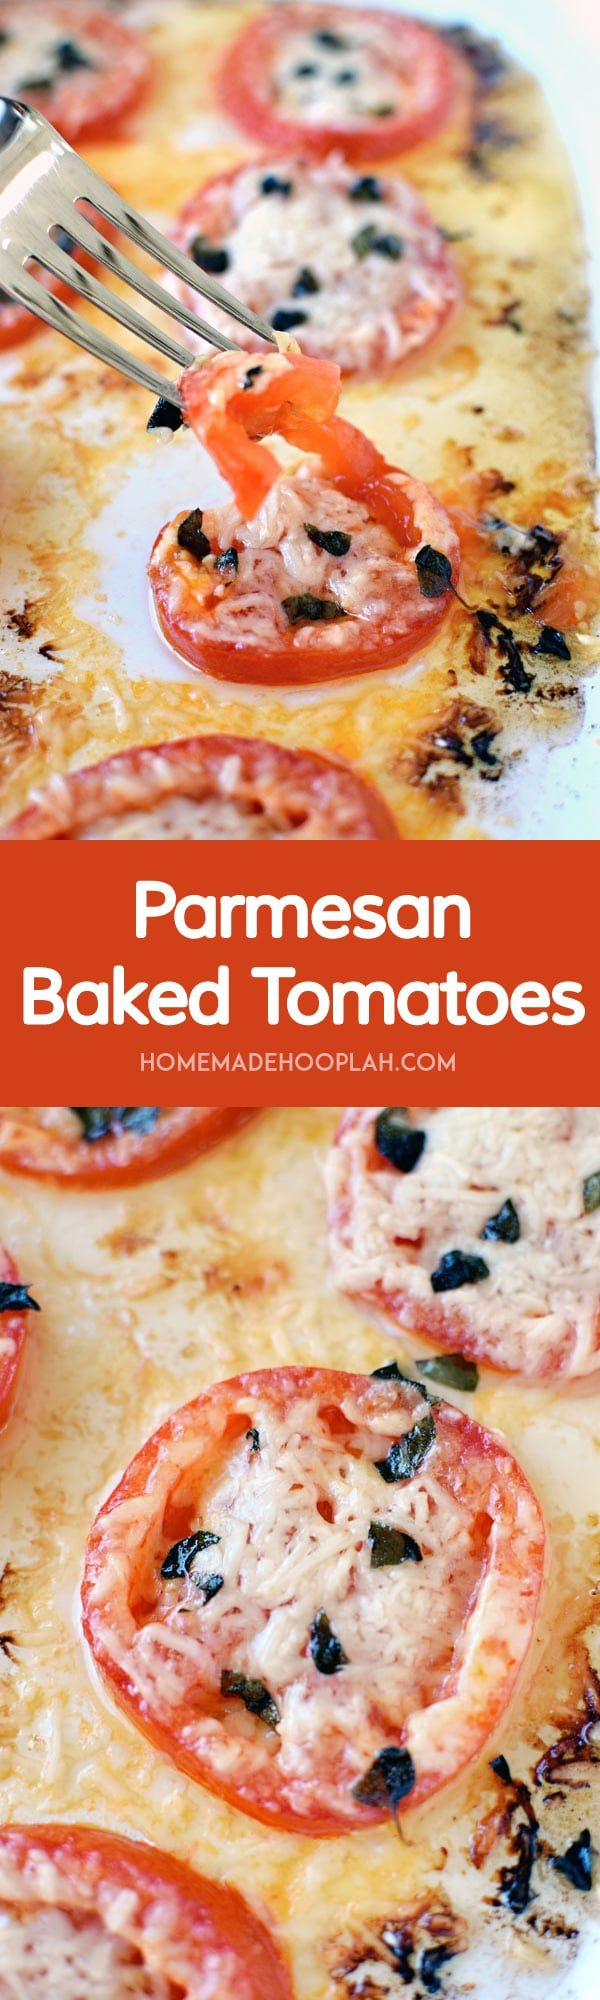 Parmesan Baked Tomatoes! It's like a pizza without the dough! Juicy tomatoes with parmesan cheese and fresh oregano.   HomemadeHooplah.com